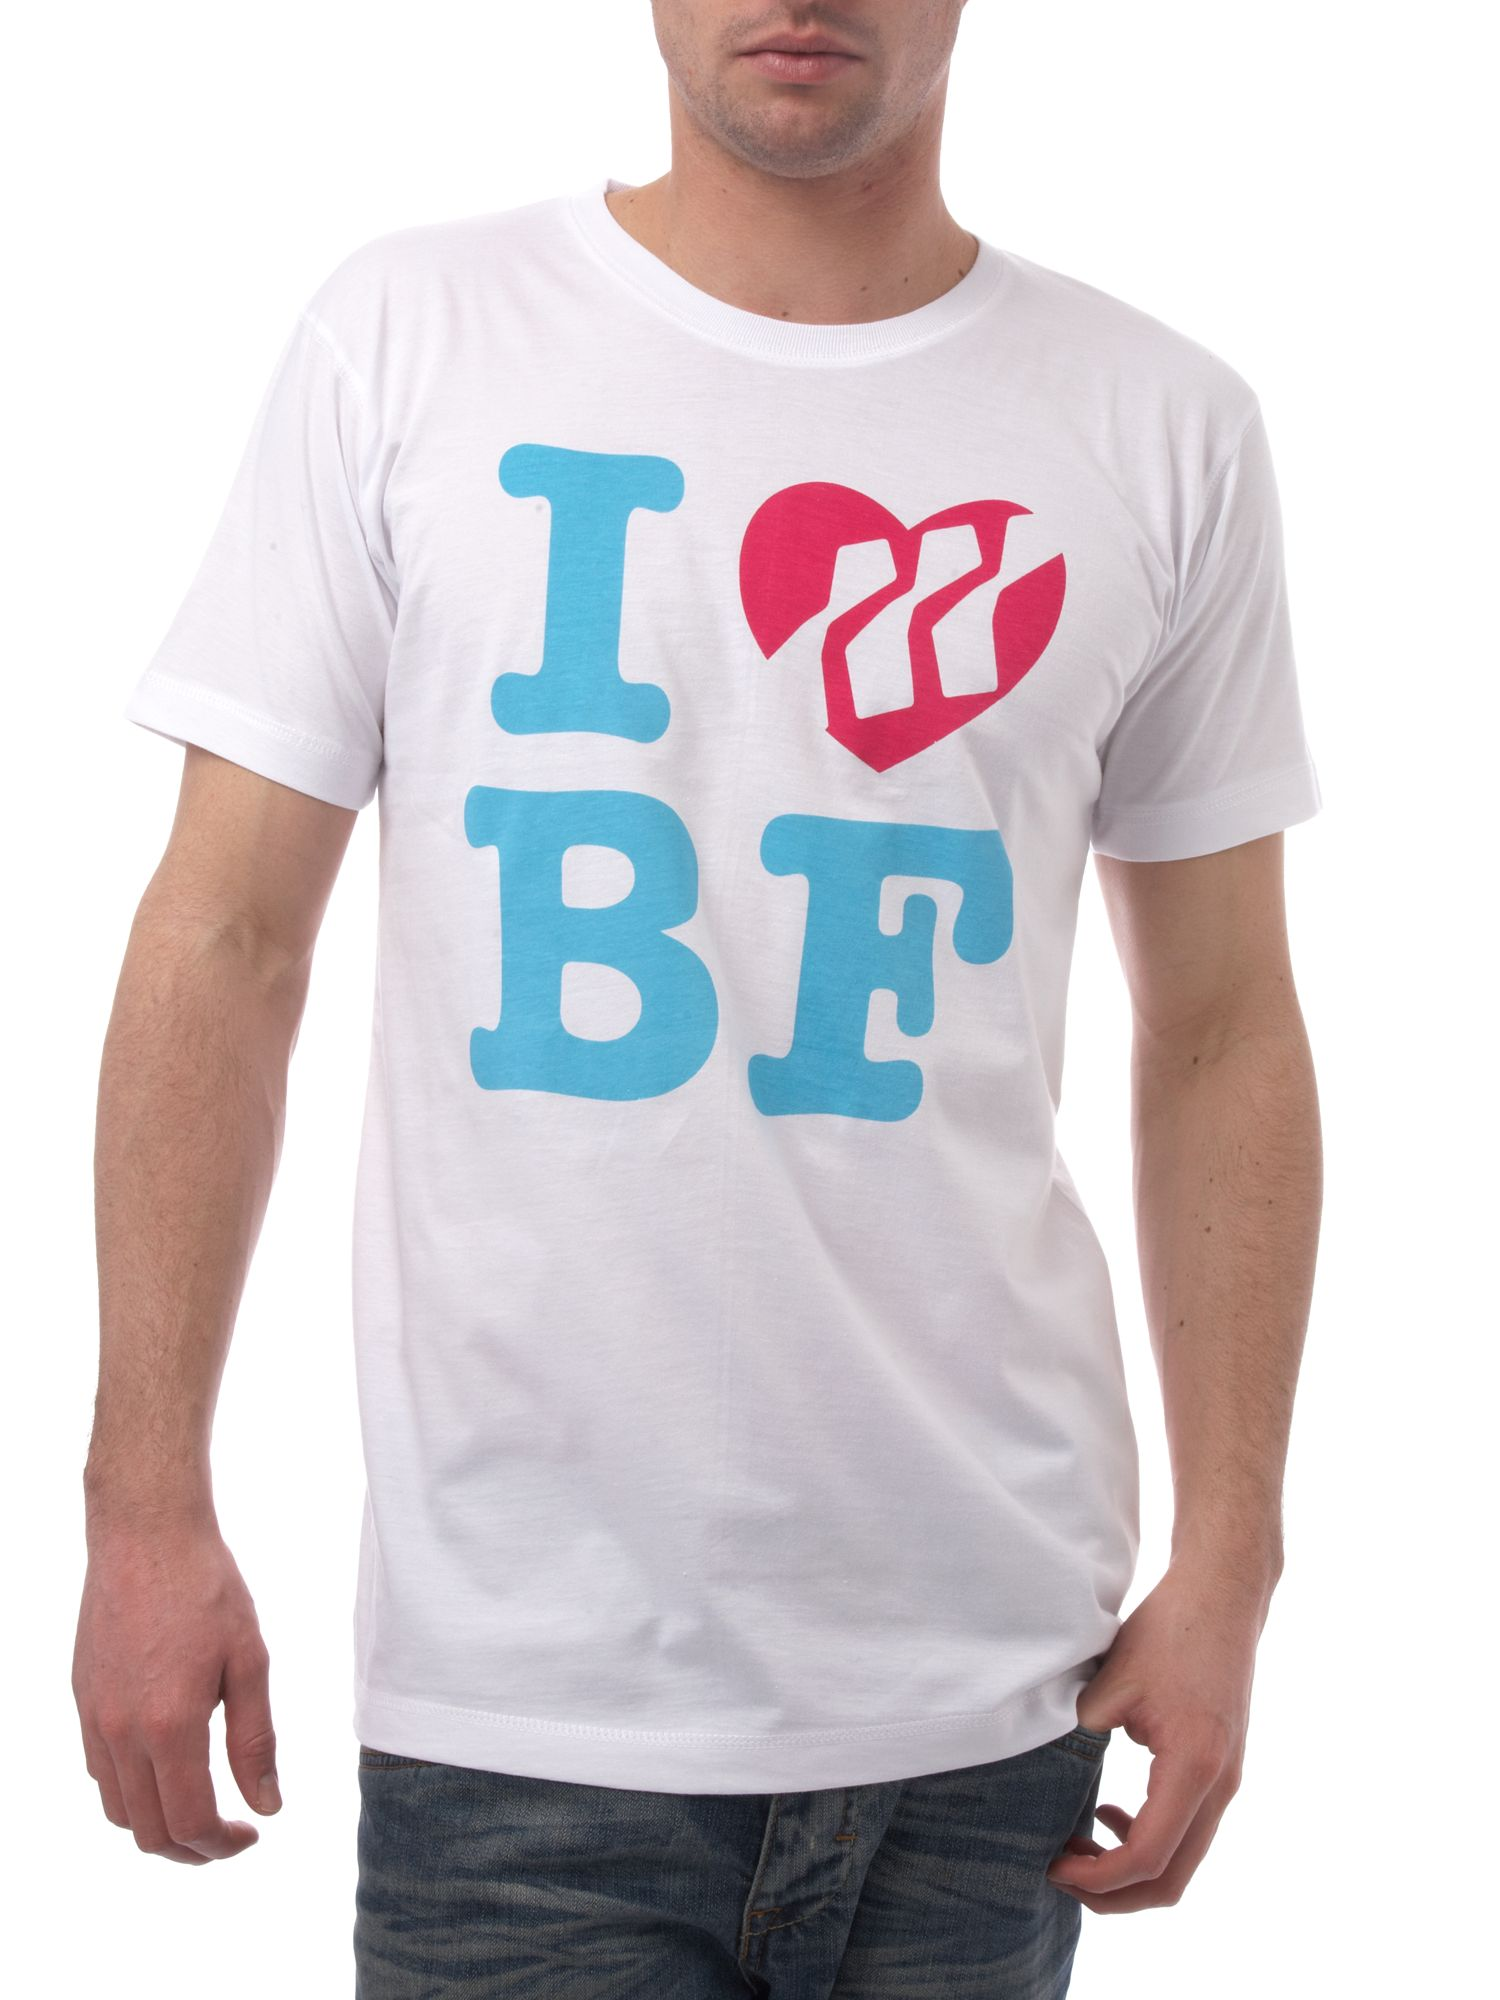 Heart printed T-shirt